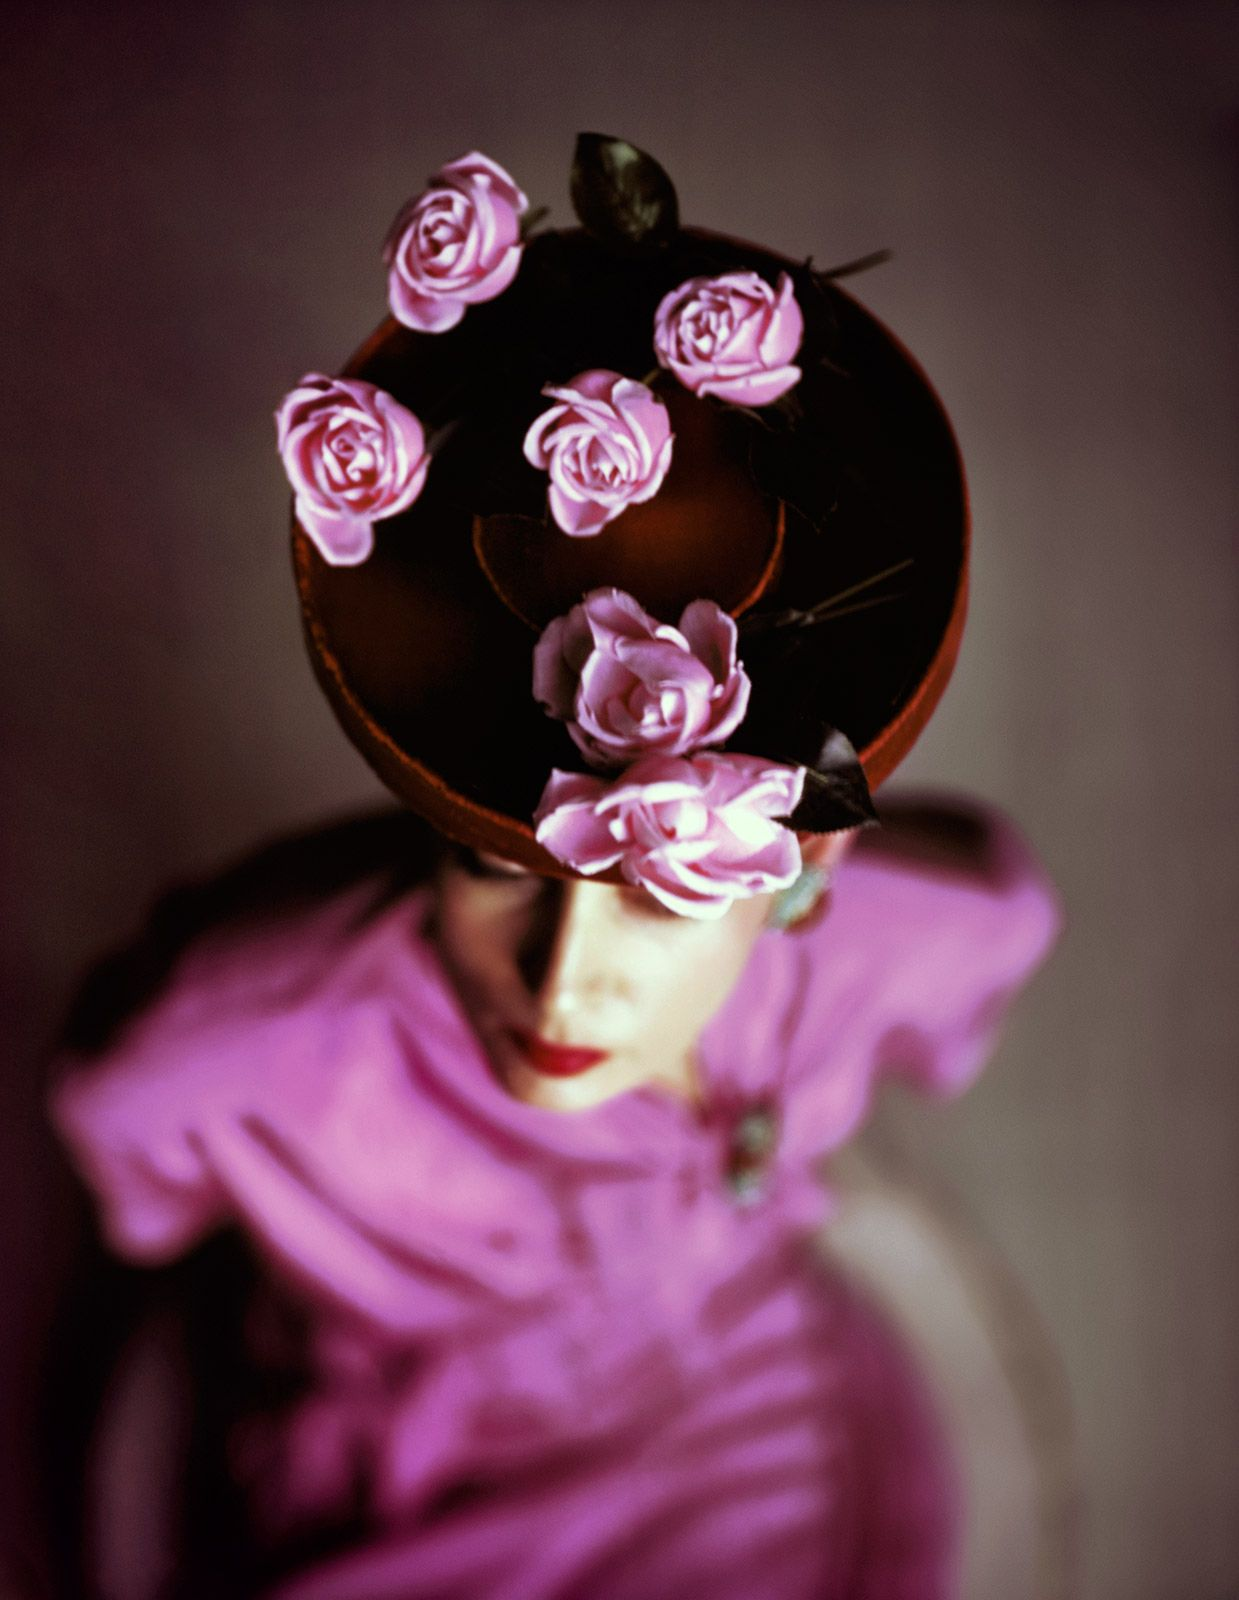 John Rawlings, VOGUE Archive Collection, Roses, 1948 / 2015 © www.lumas.com #lumas